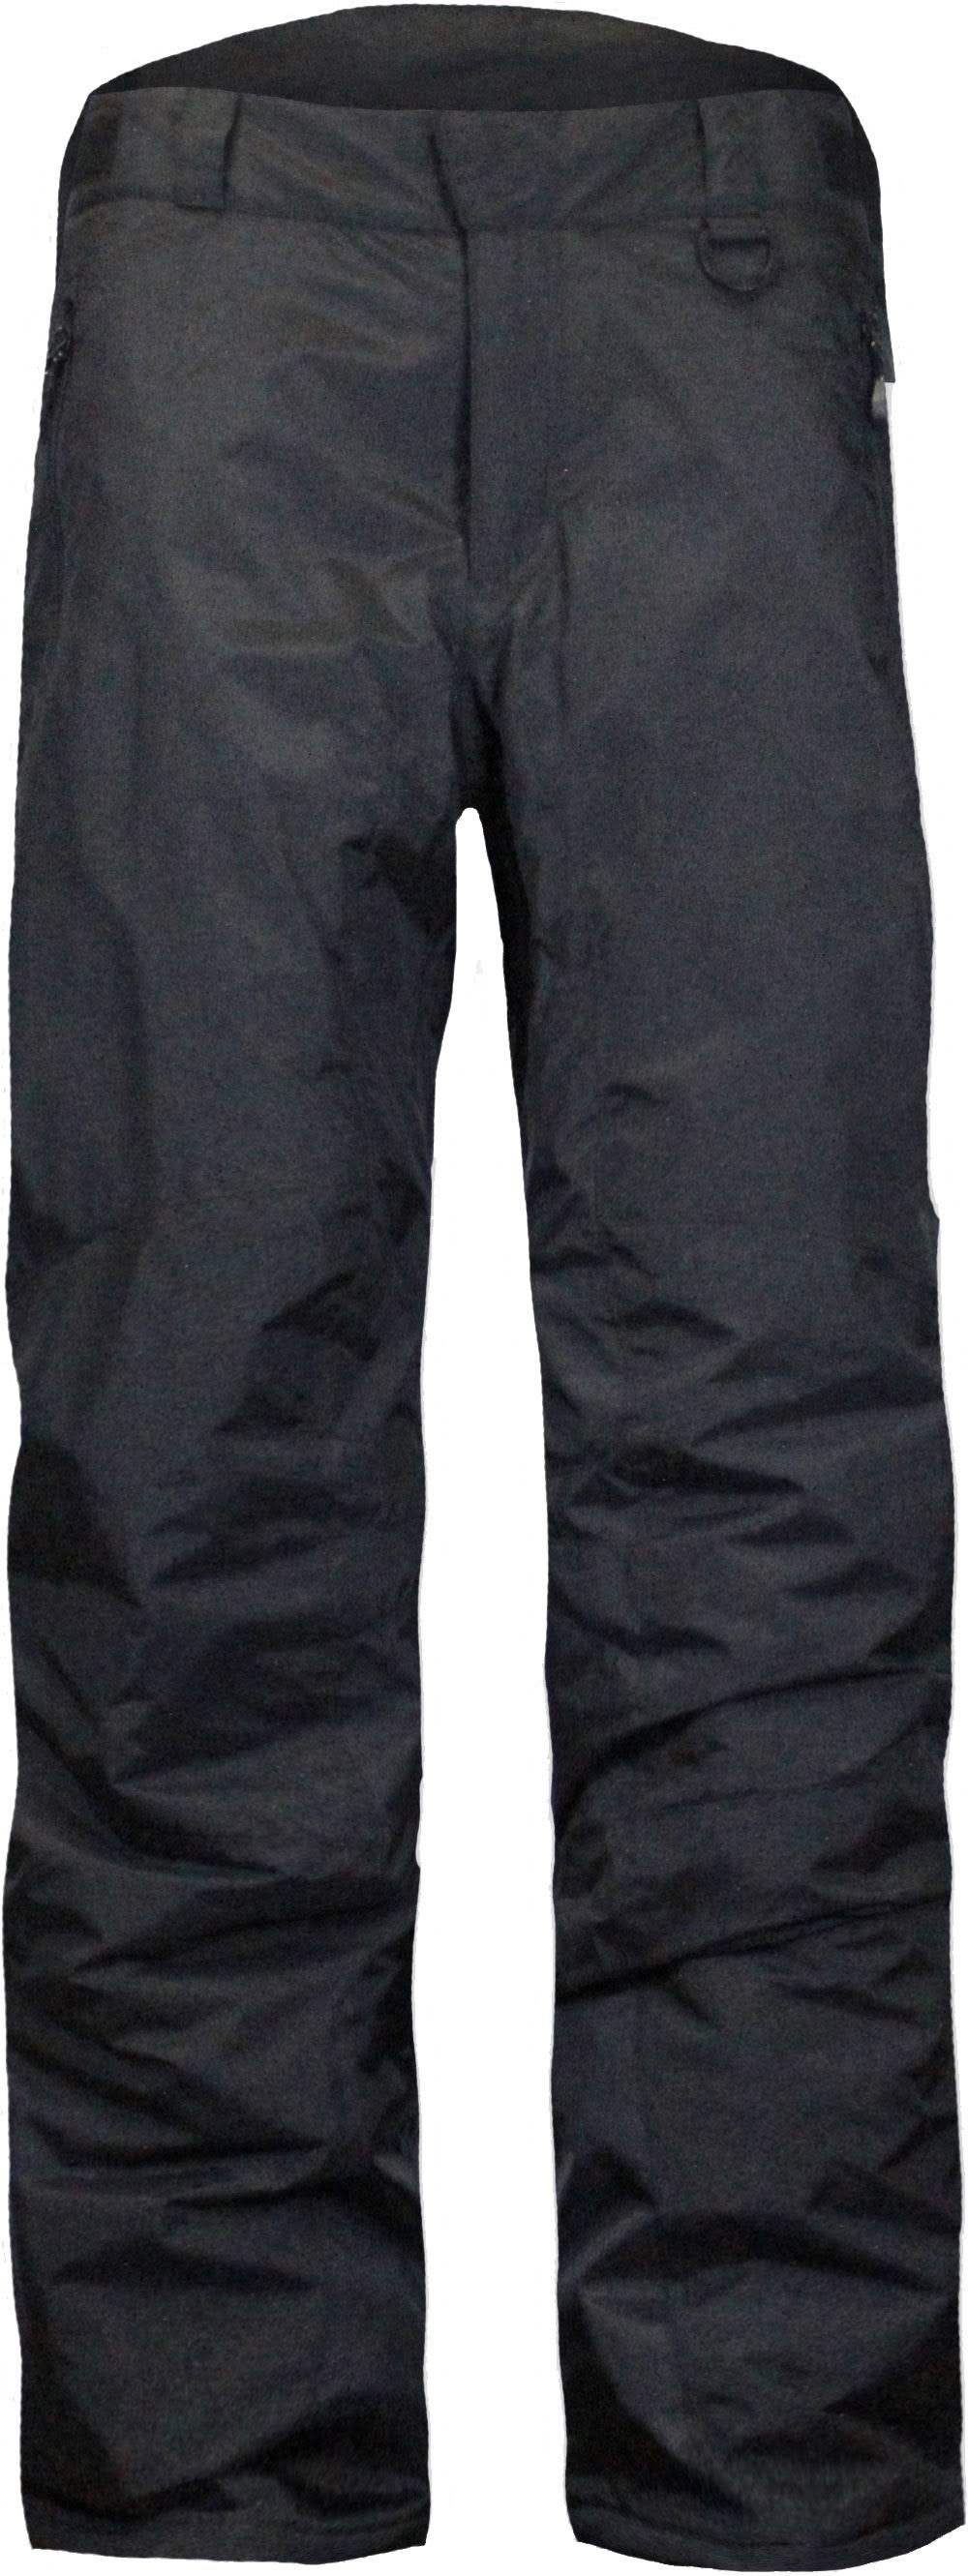 Rawik Men's Fall Line Alpine Ski Pants - Black